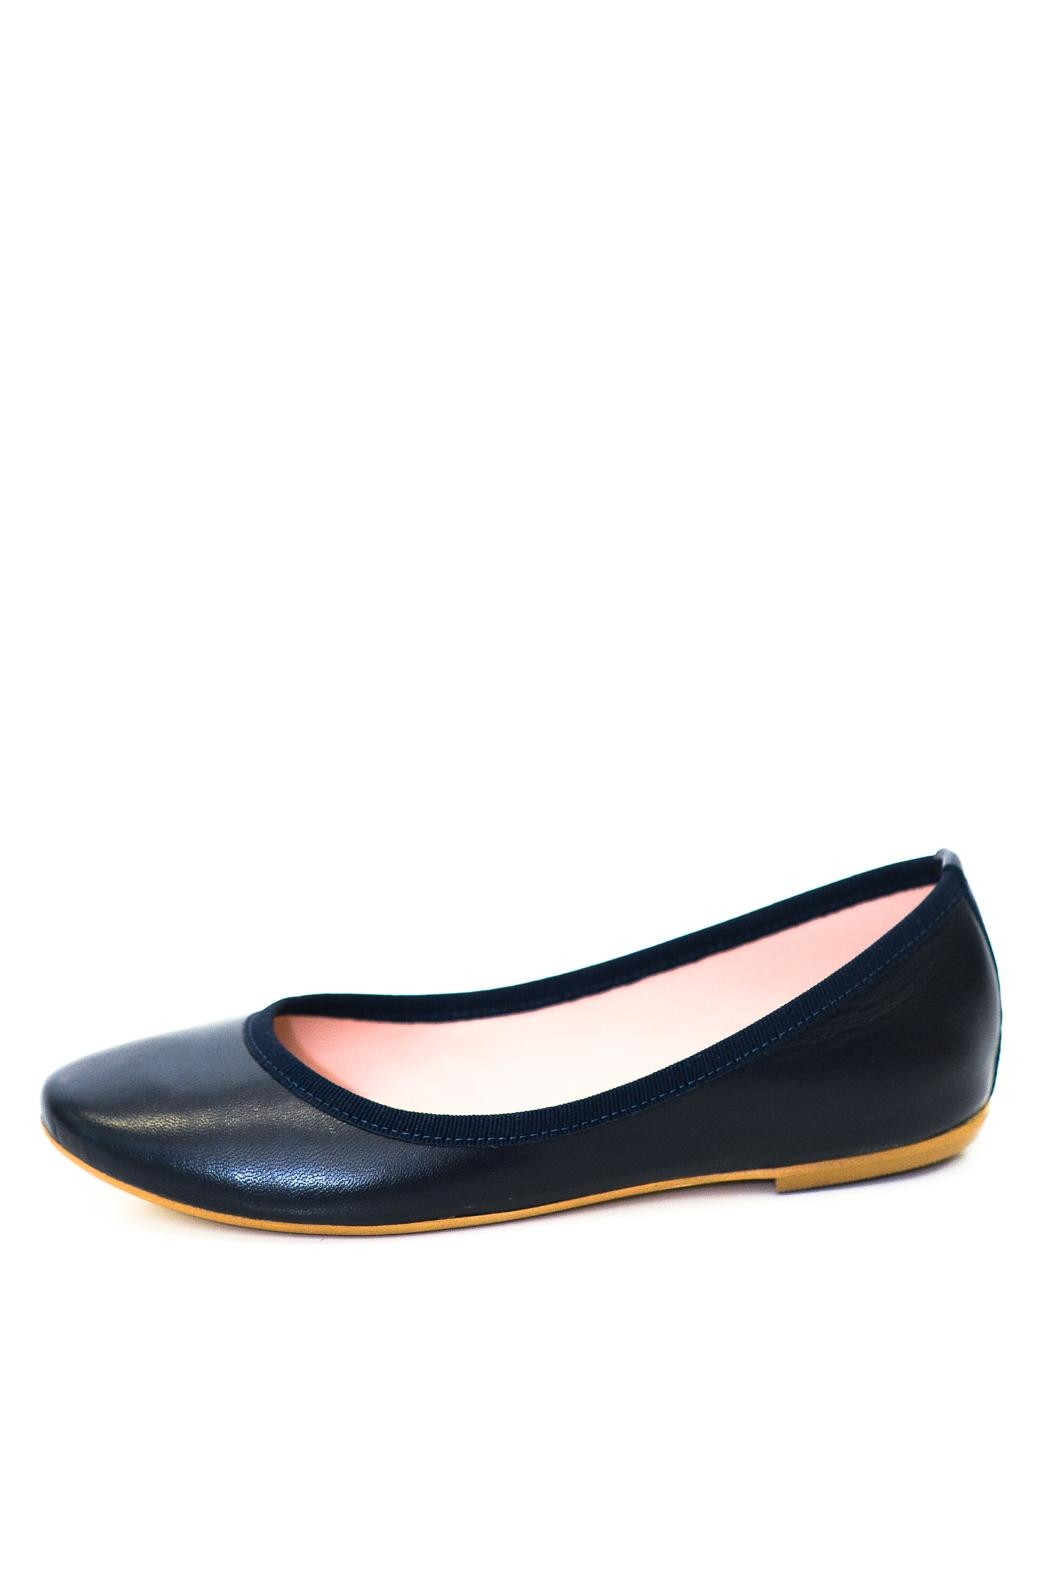 993 Navy Wedge Ballerina - Front Cropped Image